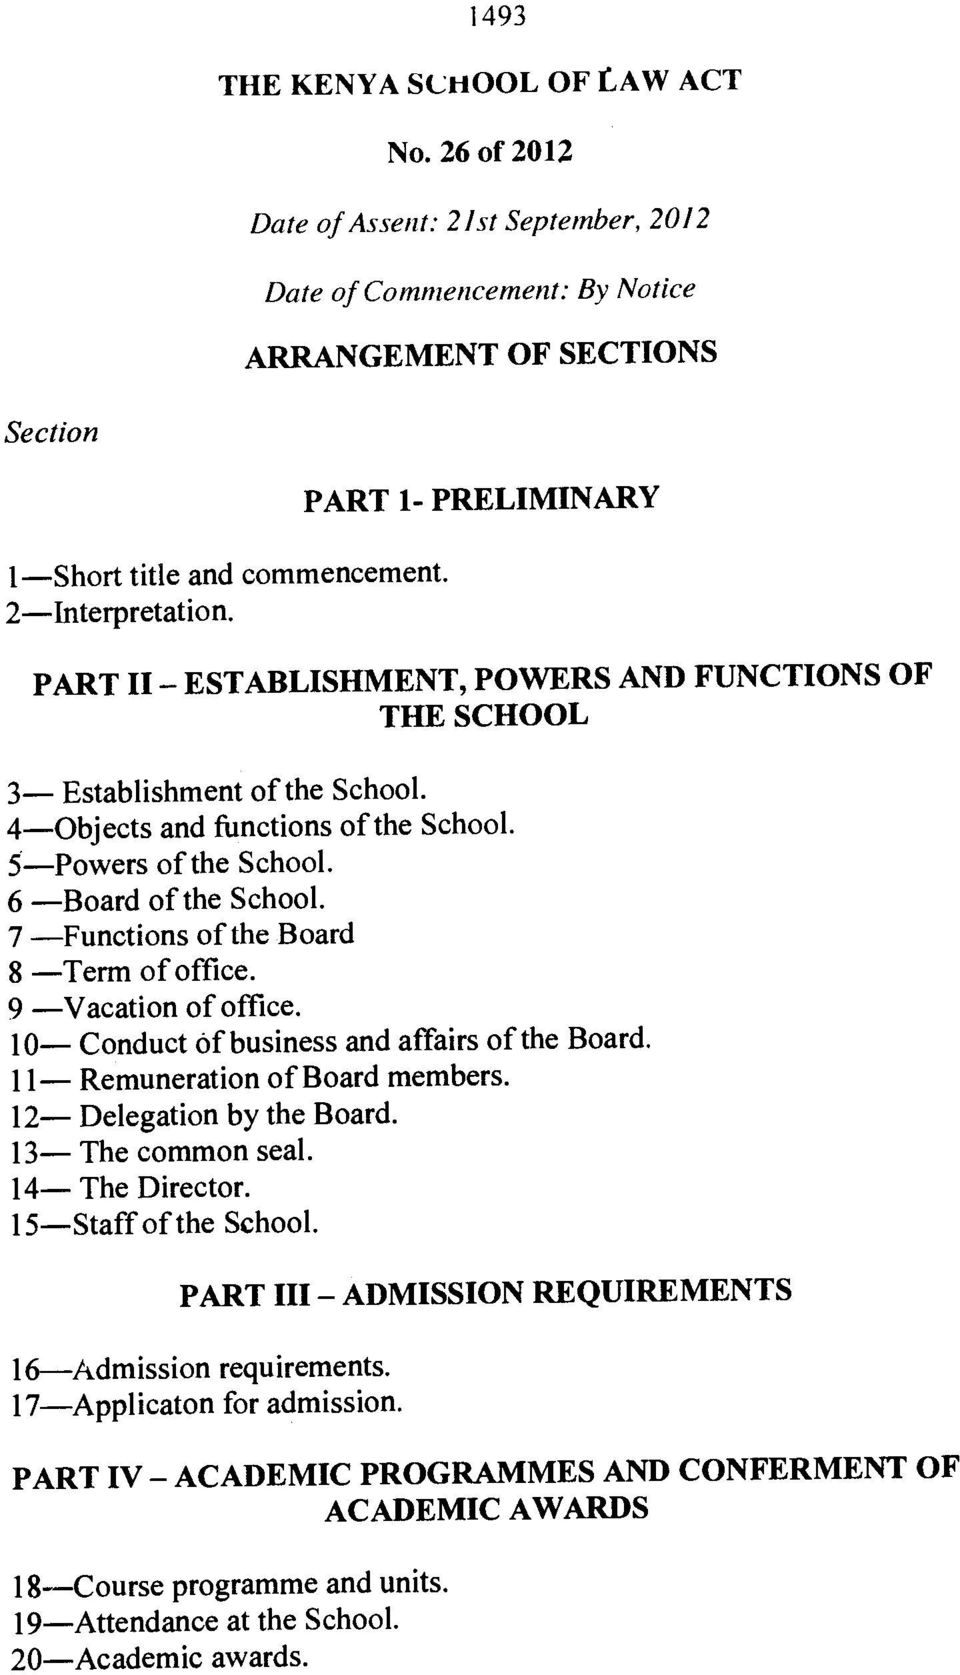 7 Functions of the Board 8 Term of office. 9 Vacation of office. 10 Conduct of business and affairs of the Board. 11 Remuneration of Board members. 12 Delegation by the Board. 13 The common seal.